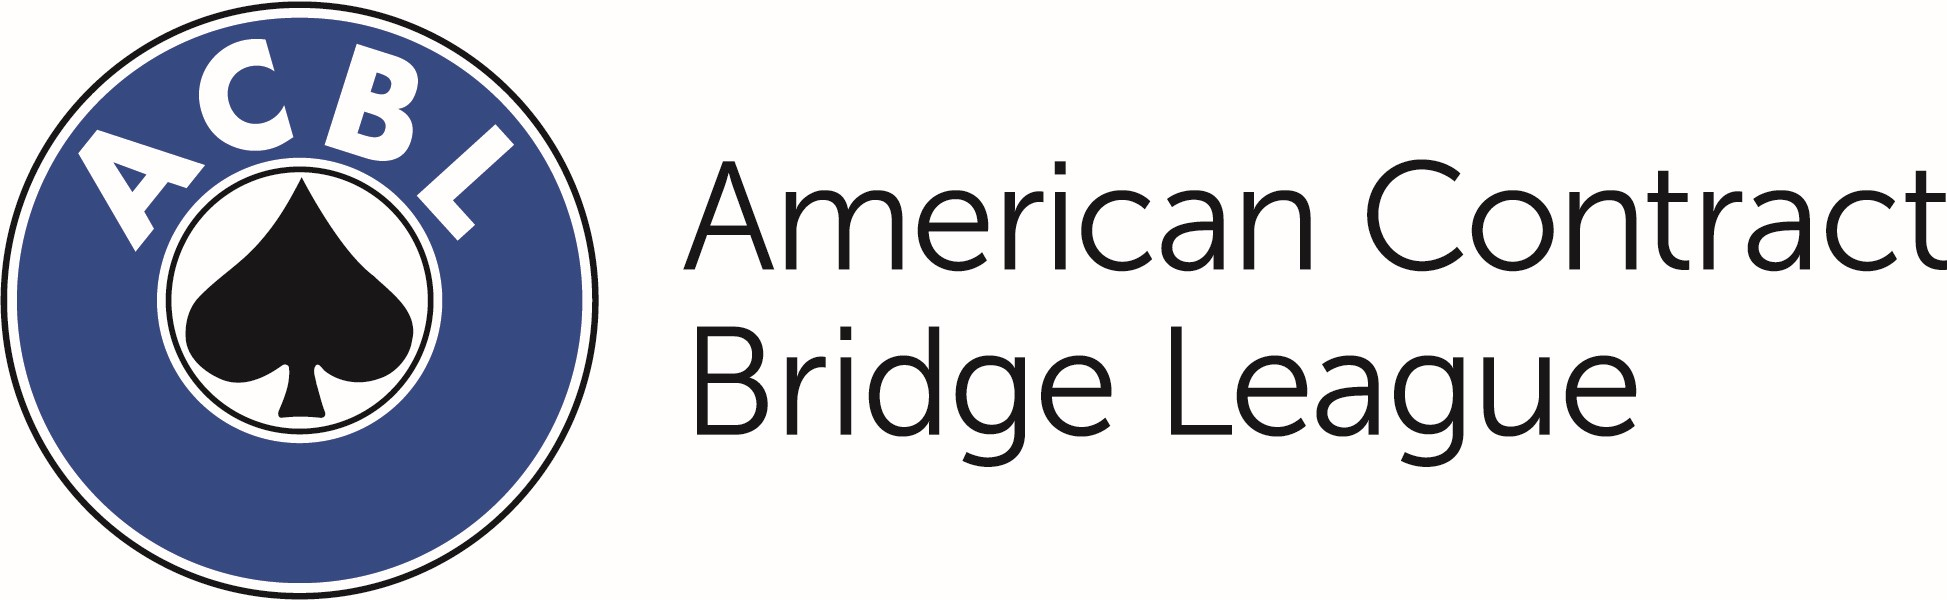 American Contract Bridge League-Fall Championship logo